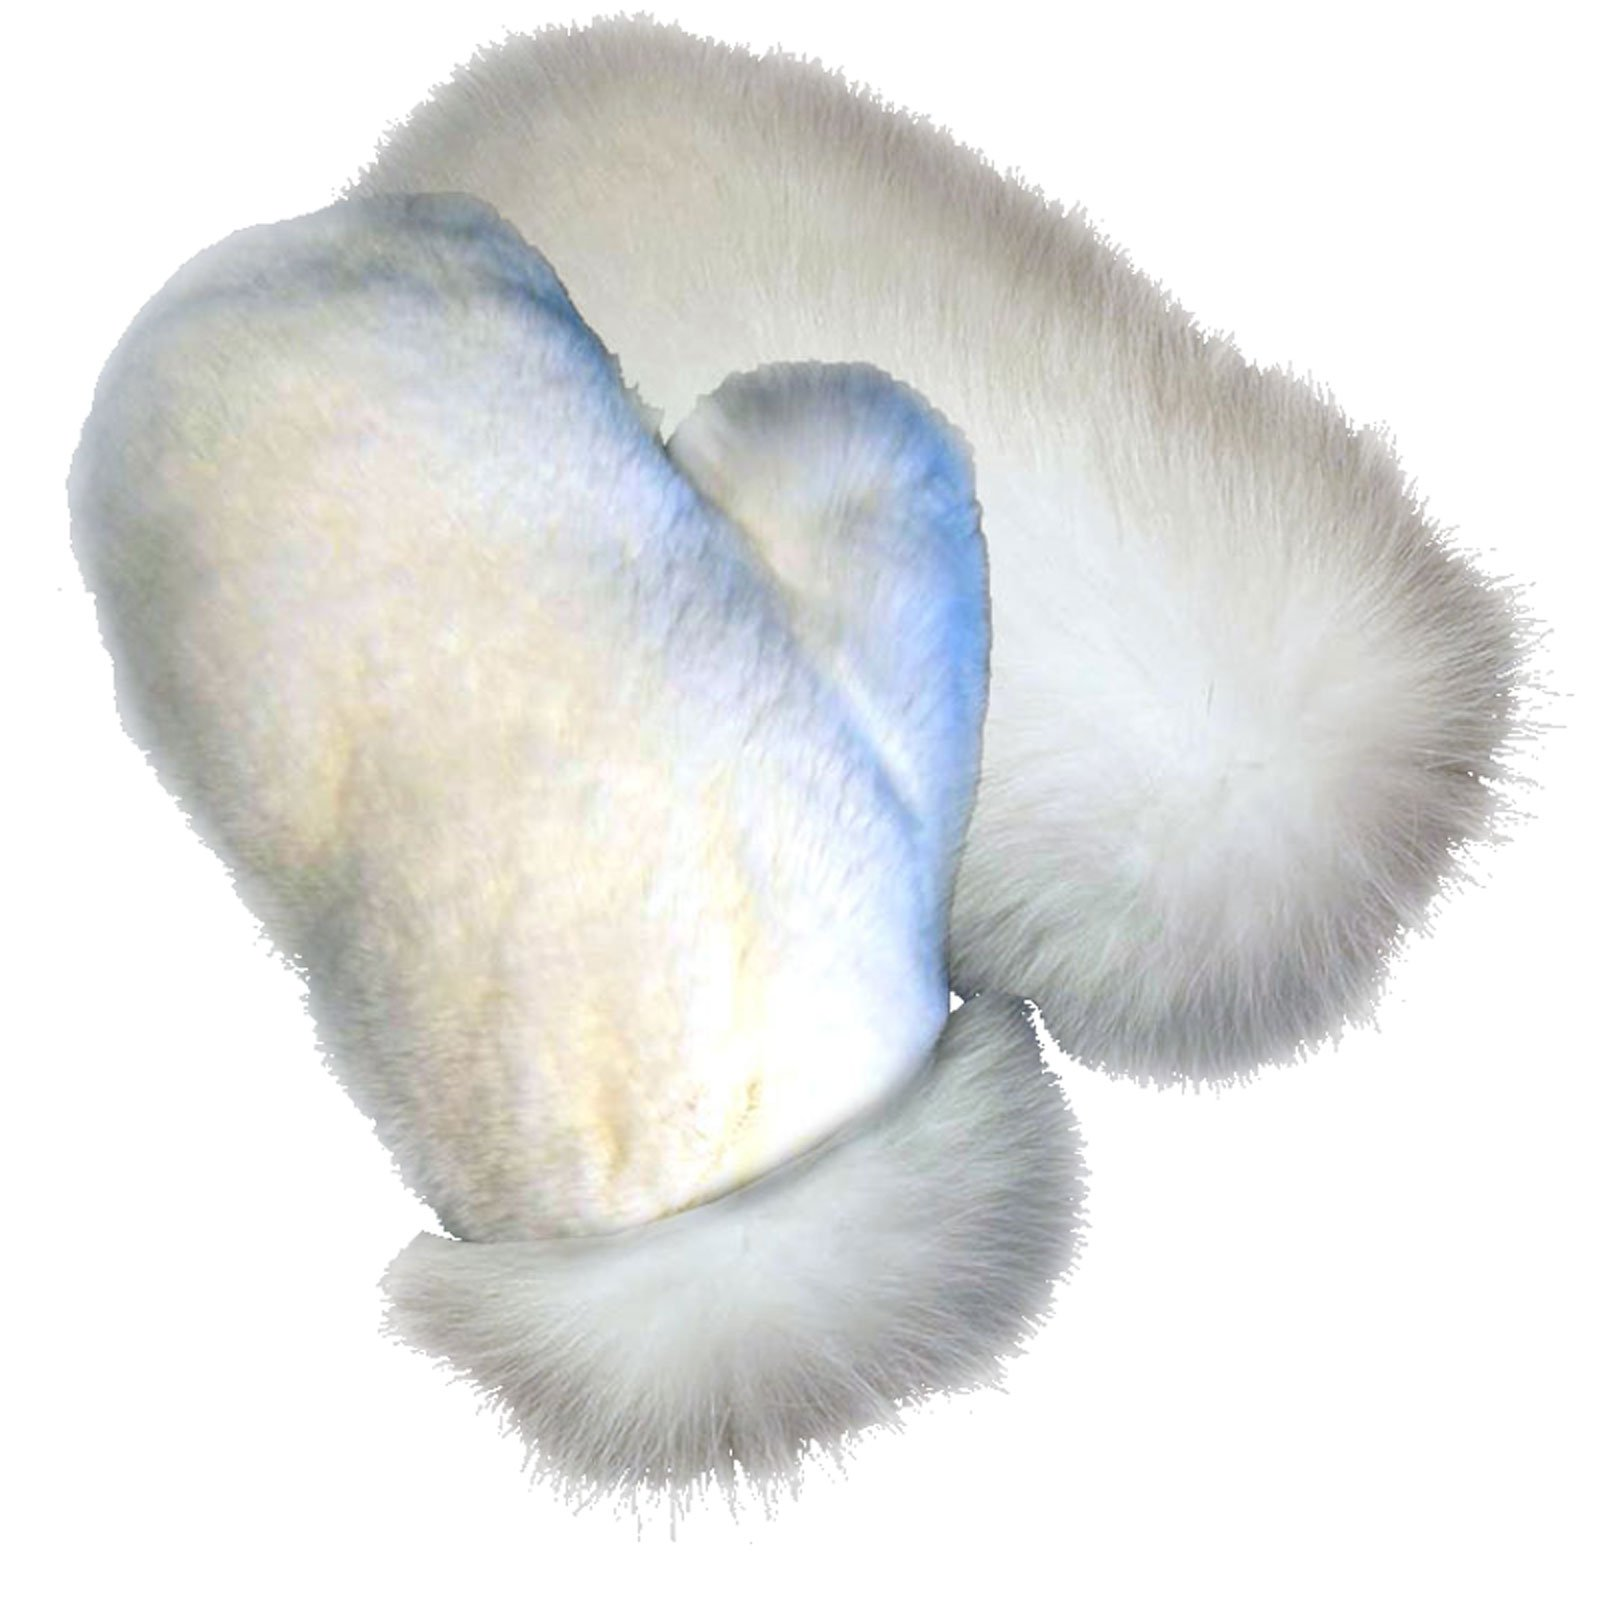 MinkgLove Full Fur Massage Glove, Mink and Rex Rabbit, Covered Inside and Outside, Textured Soft, White, Hand Tailored, Unisex, One Size - Four Sided All Fur